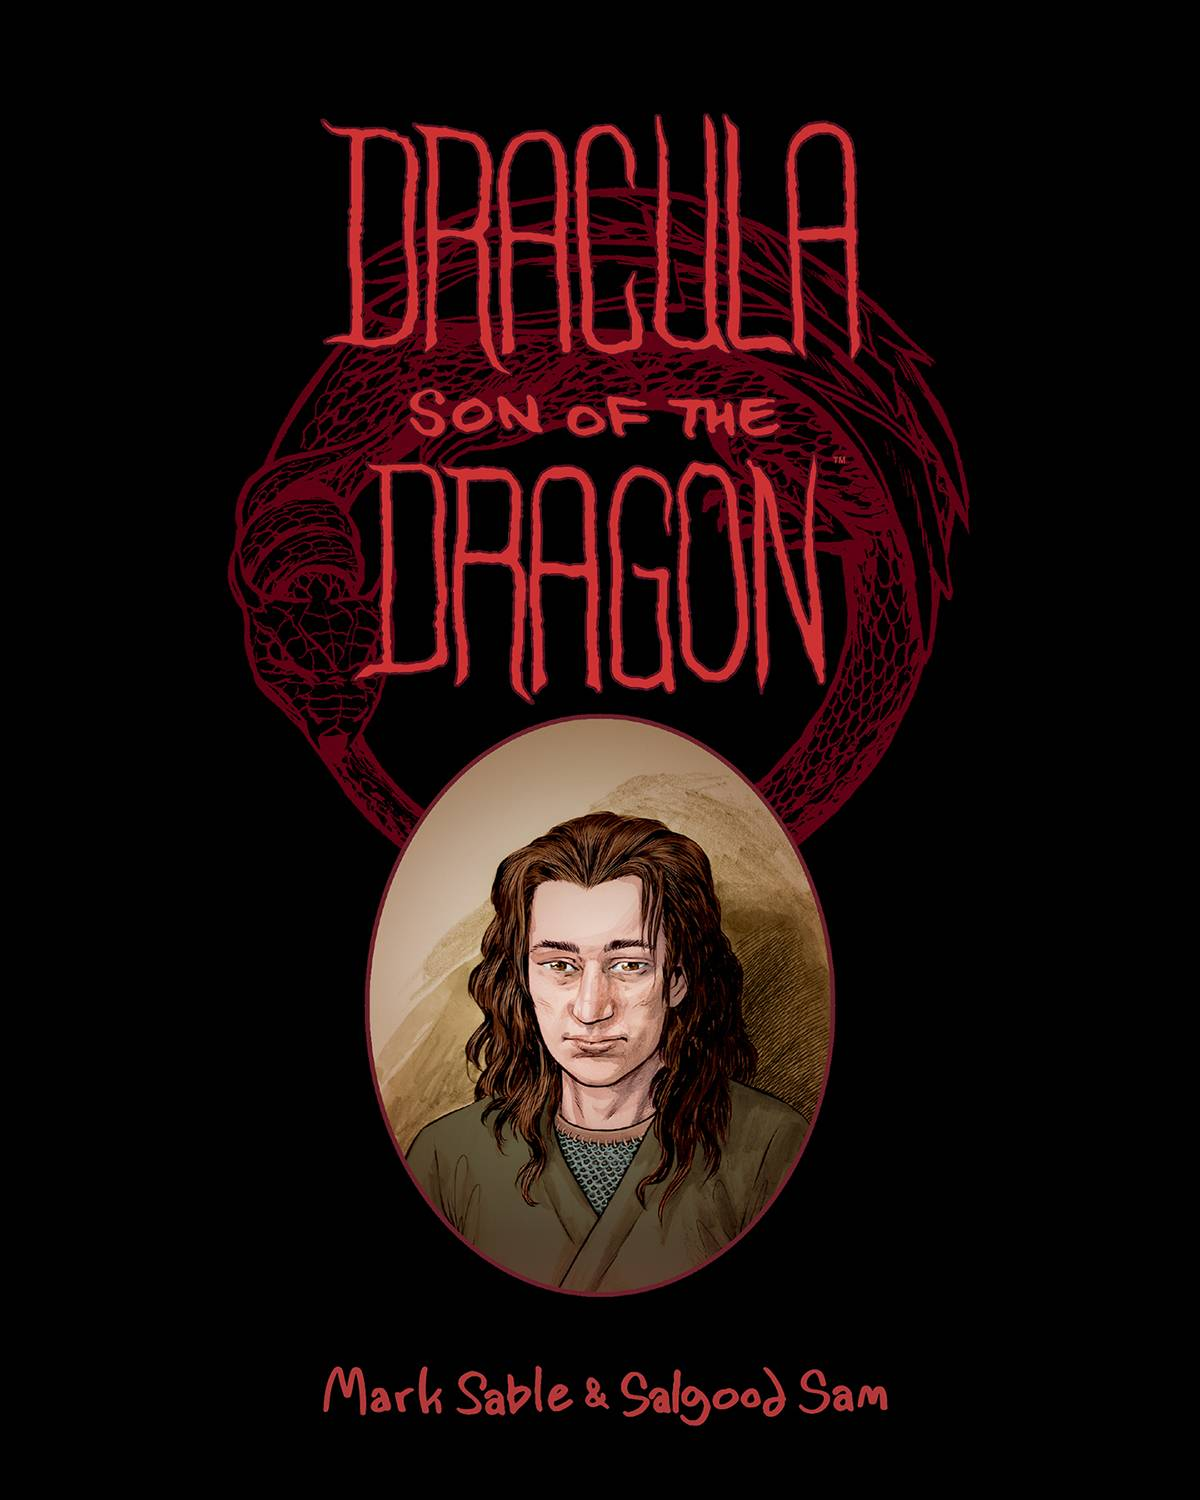 DRACULA SON OF THE DRAGON TP